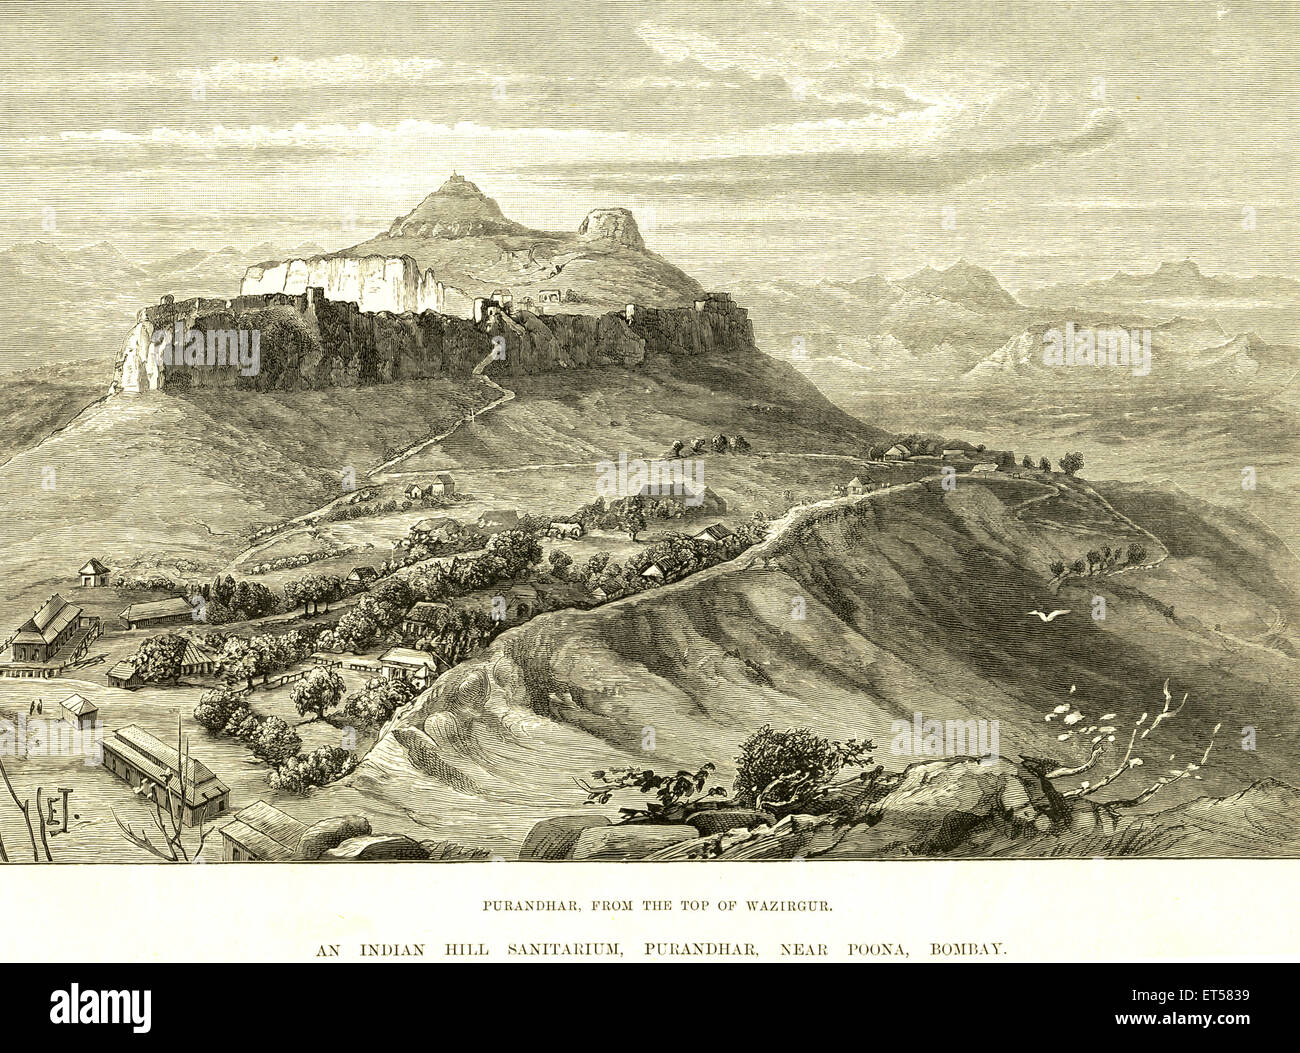 Holidays and Hill stations Purandhar from the top of Wazirgur ; an Indian hill Sanitarium ; Purandhar ; Poona Puna - Stock Image